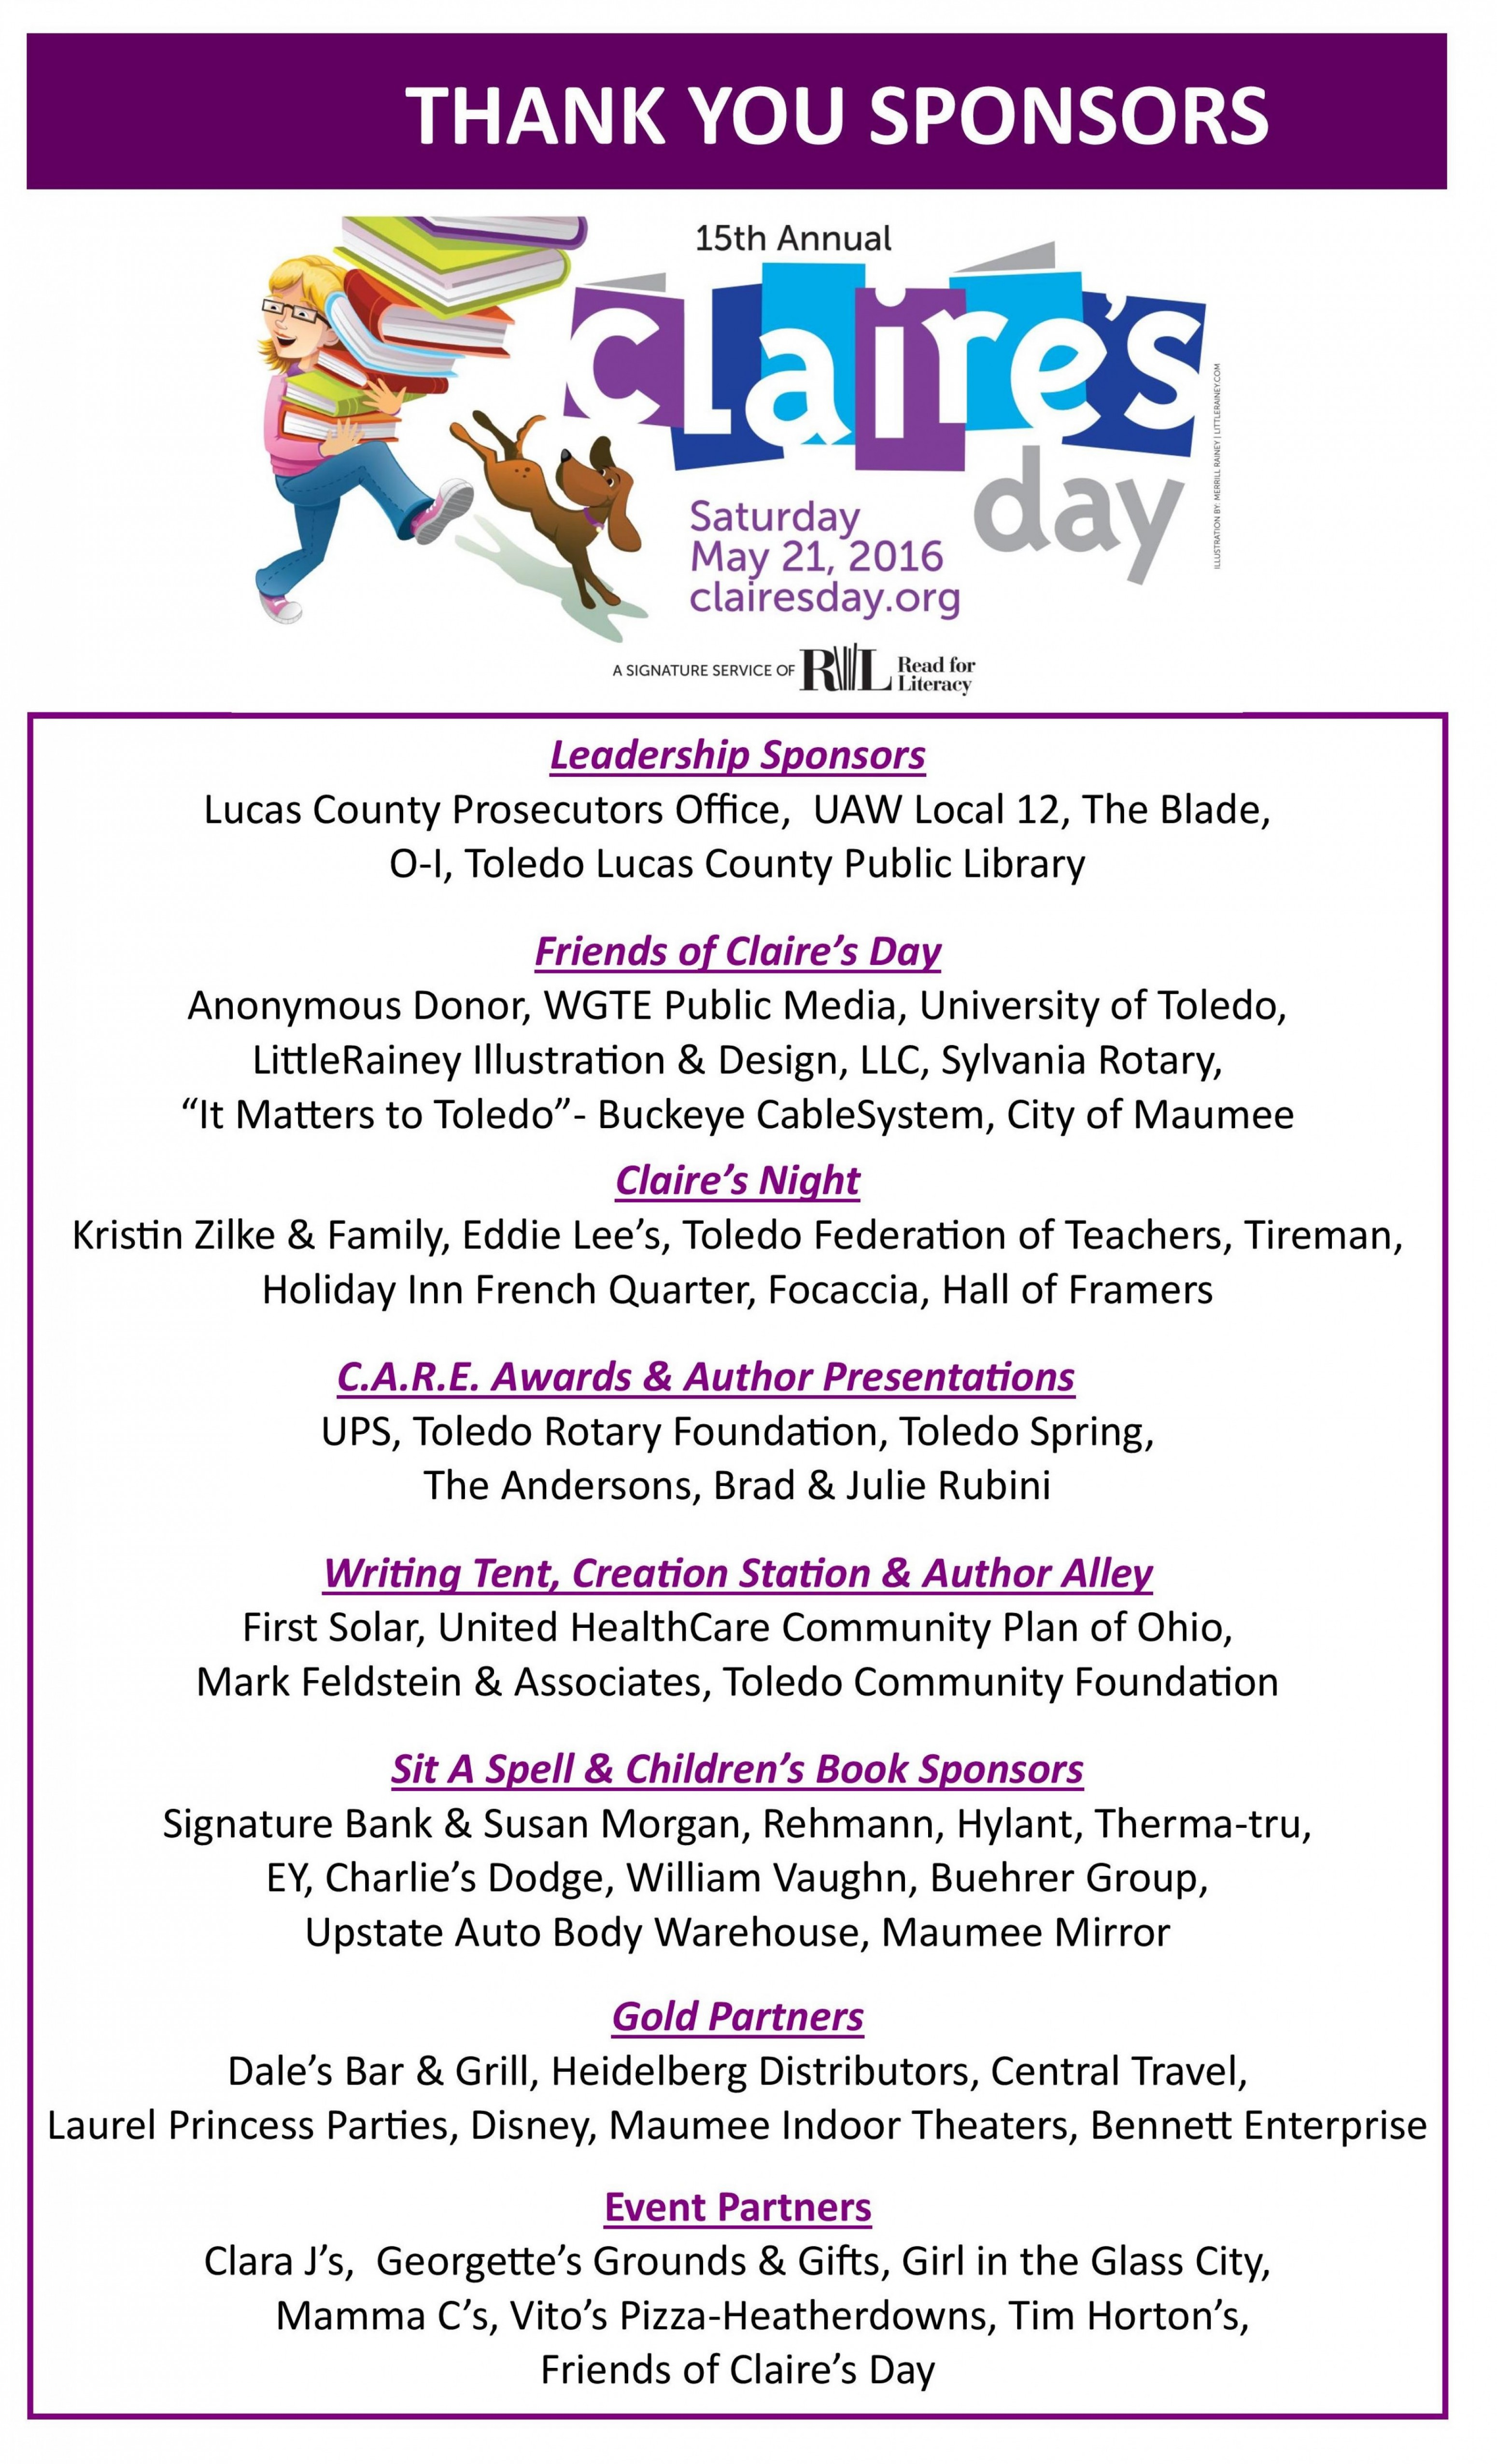 Ohio lucas county maumee - We Want To Offer A Special Thank You To Our Sponsors Please Support These Businesses